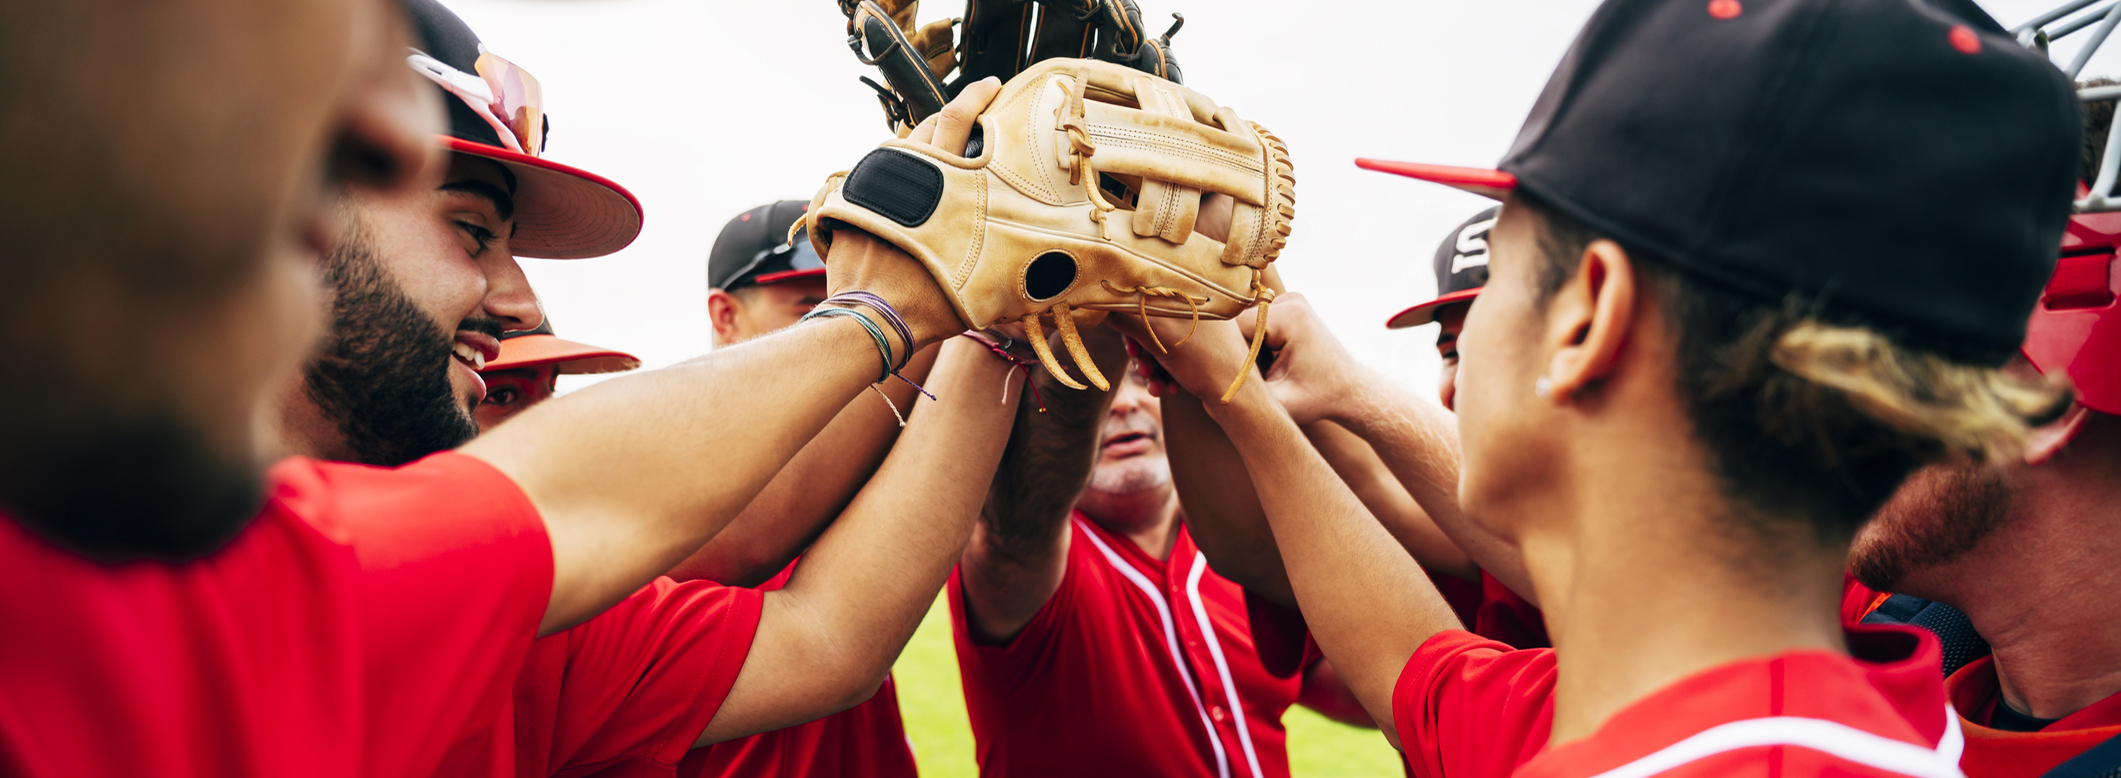 Have you played team sports? It's not too late to start!